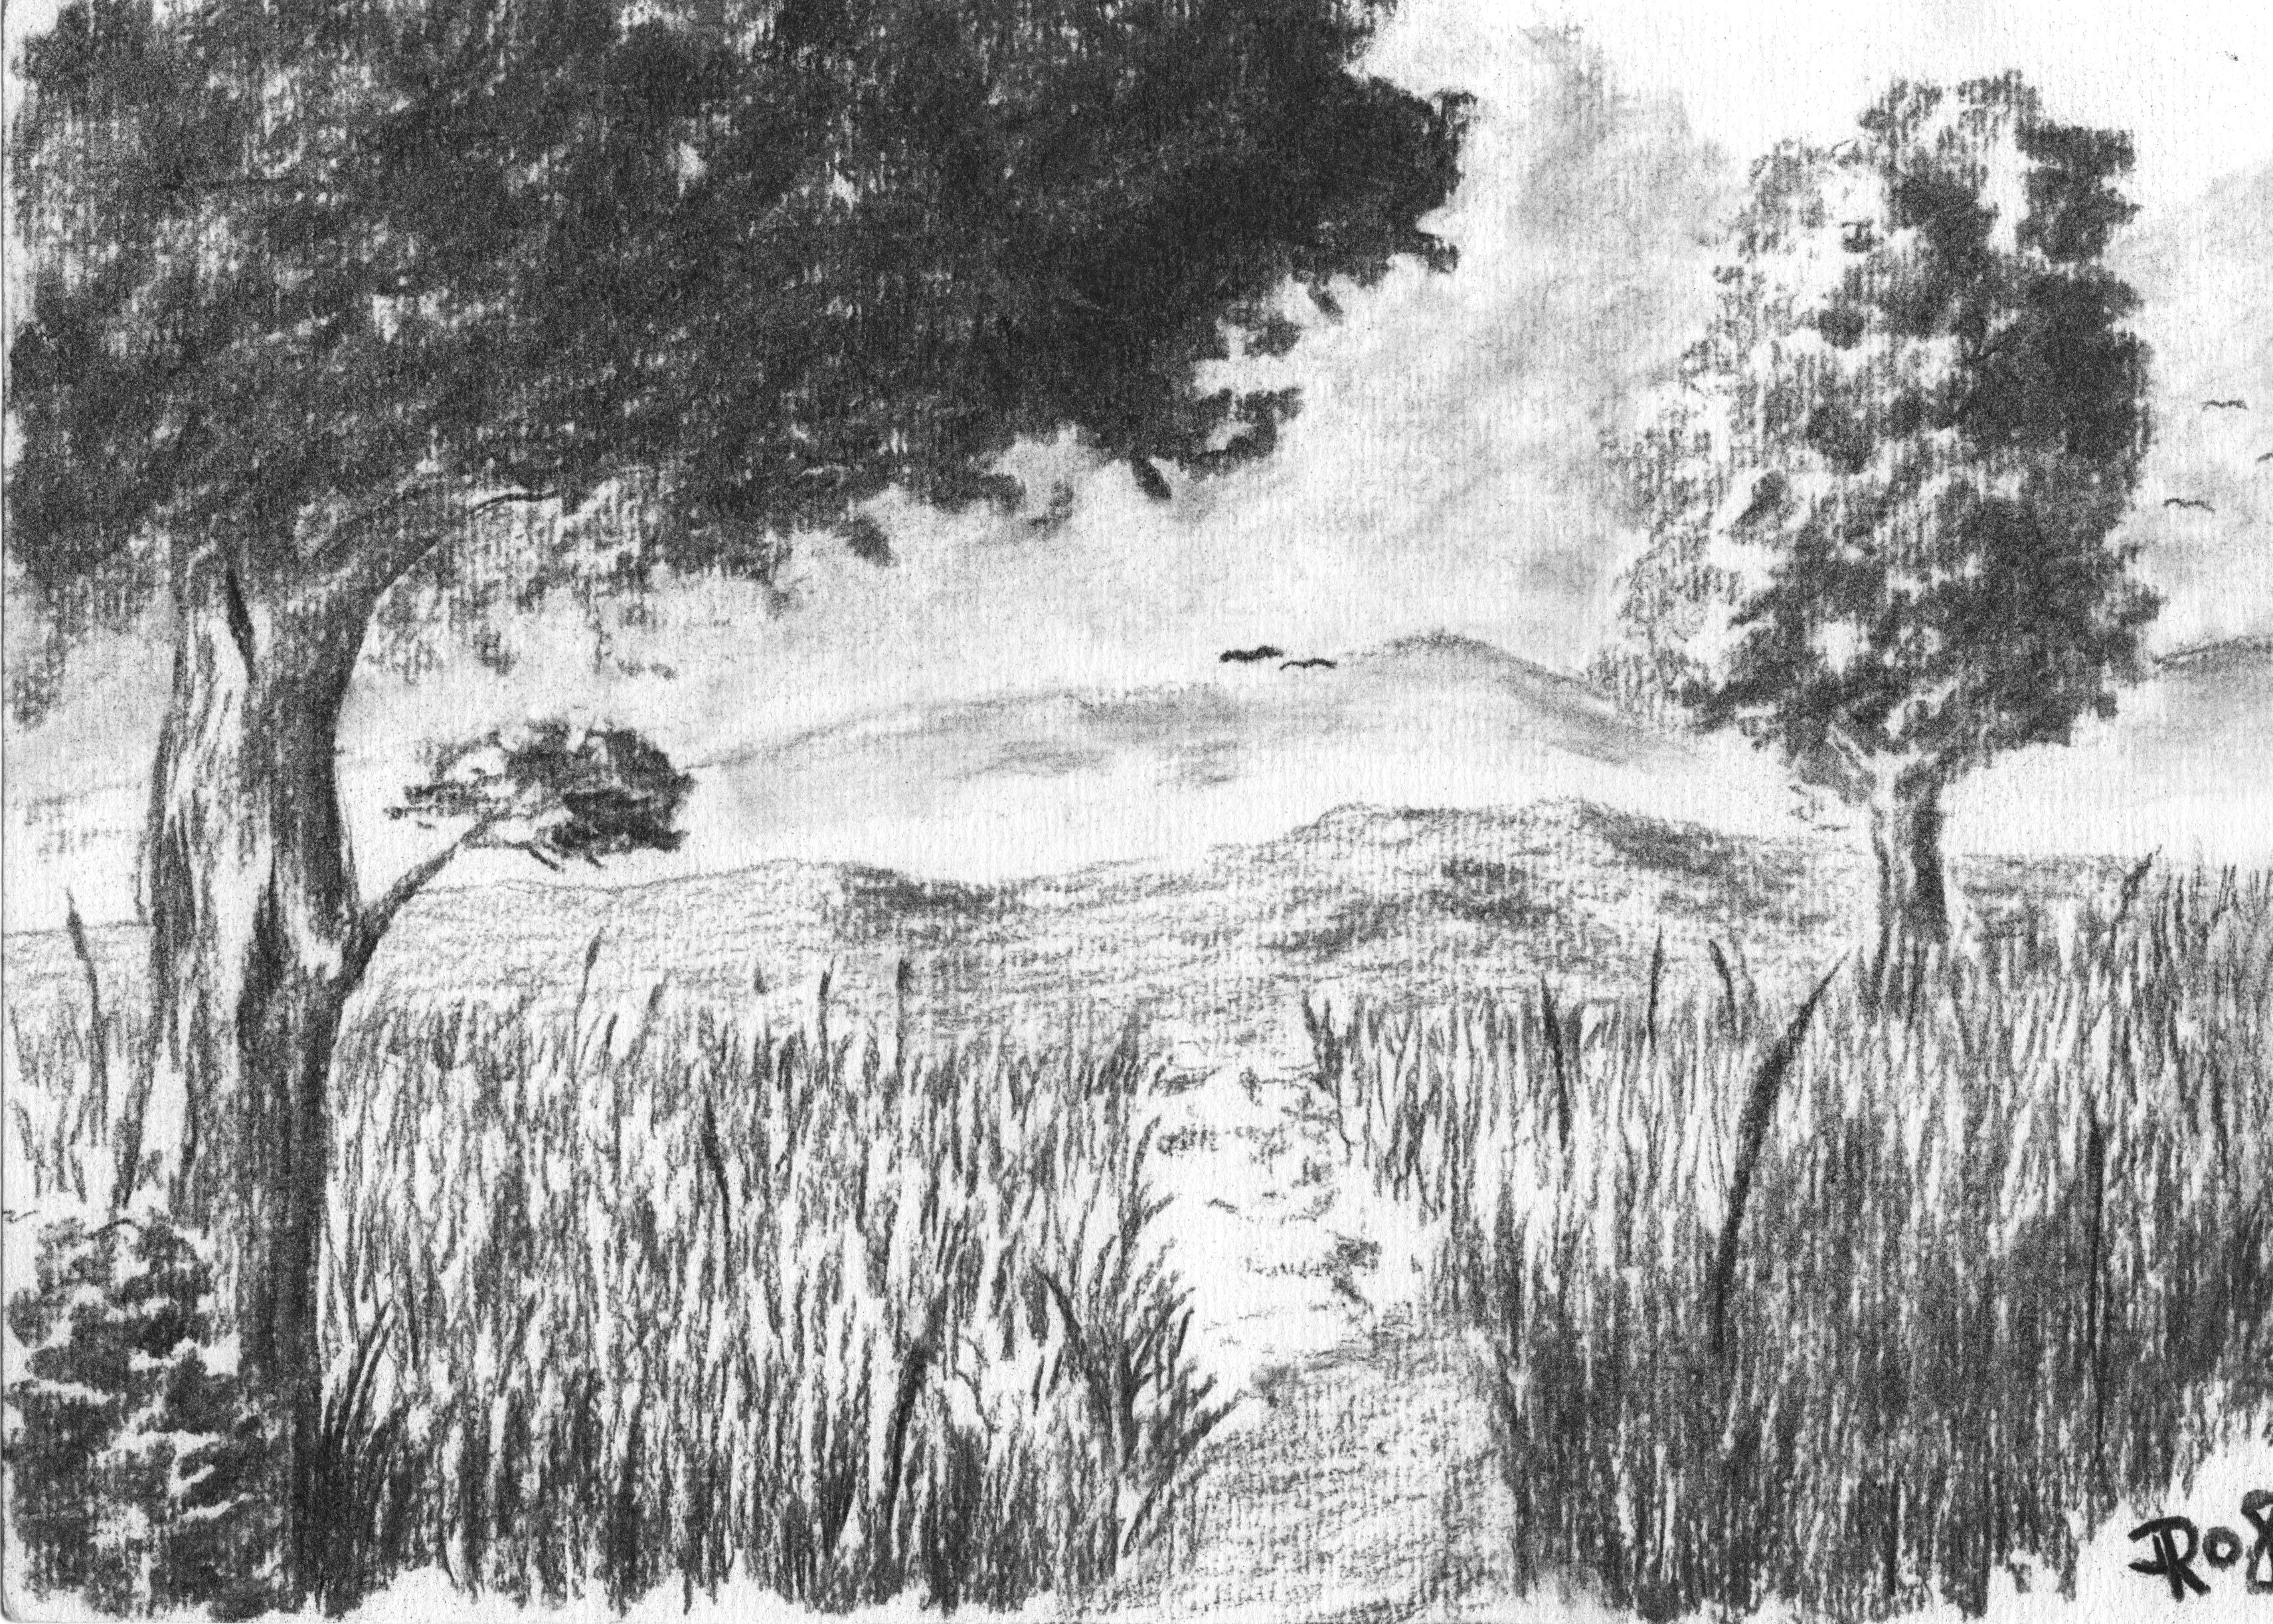 Drawn grass charcoal Do landscape charcoal zeichnen best